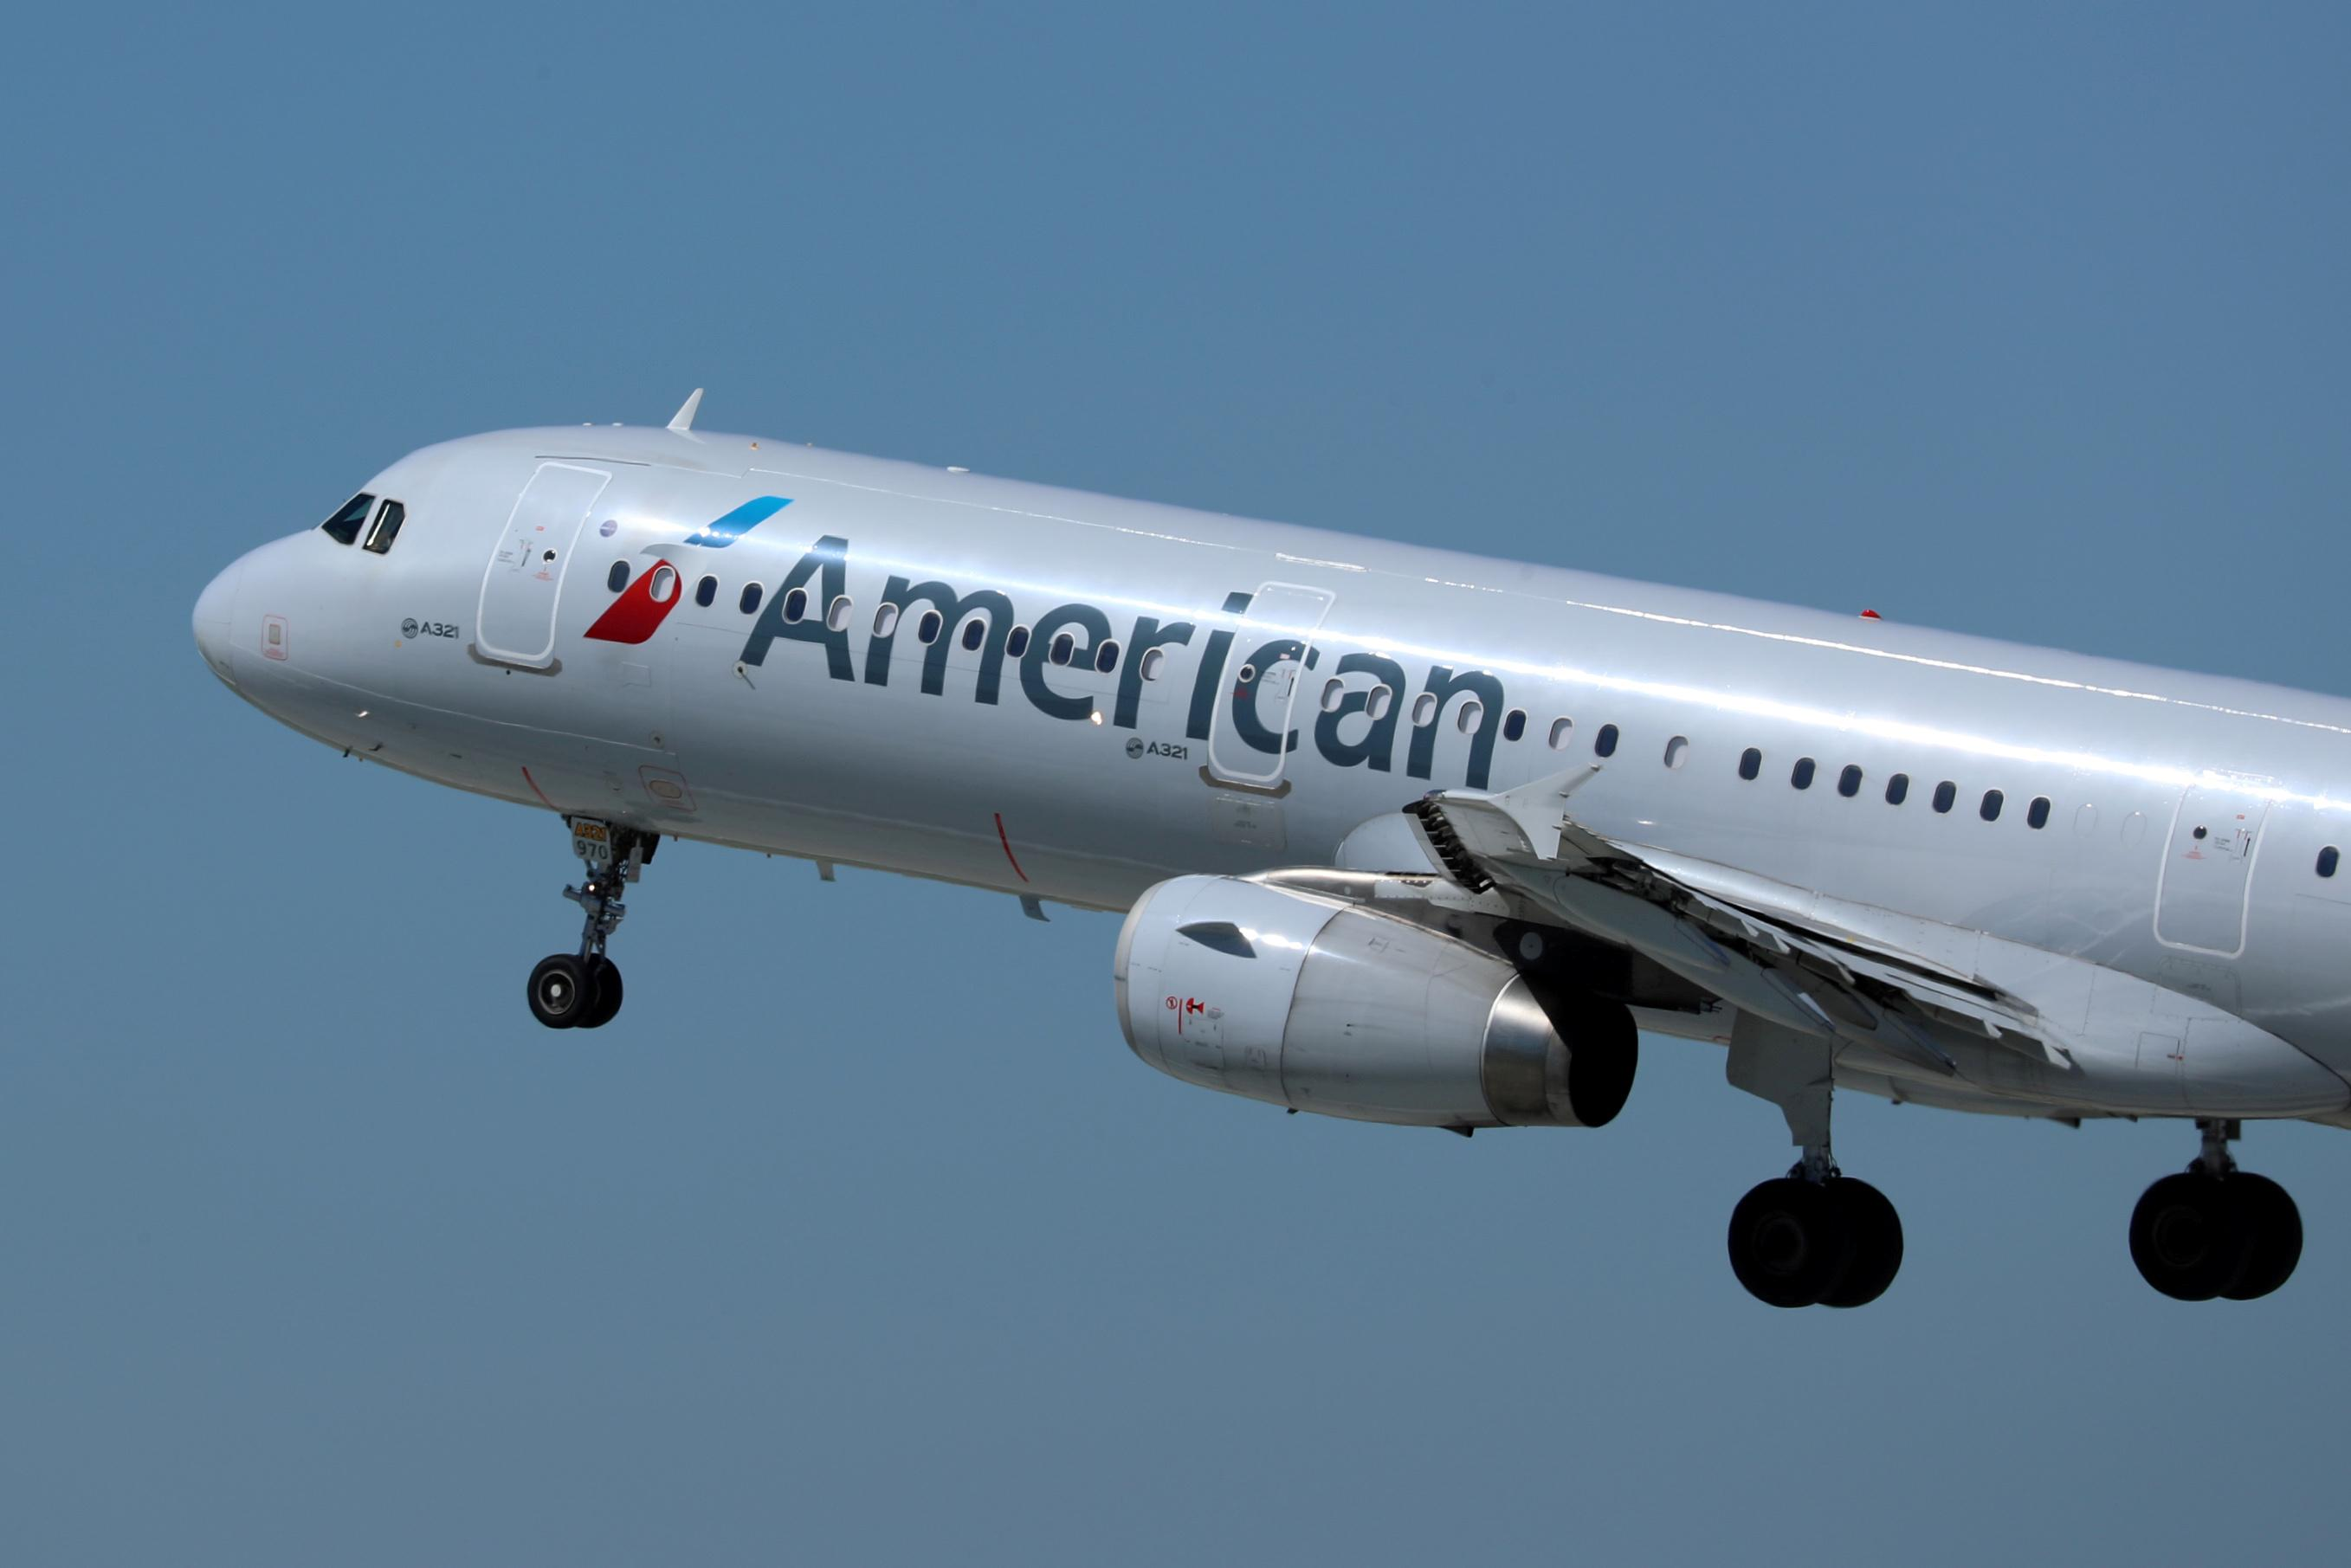 American Airlines cancels hundreds of flights due to technical issue